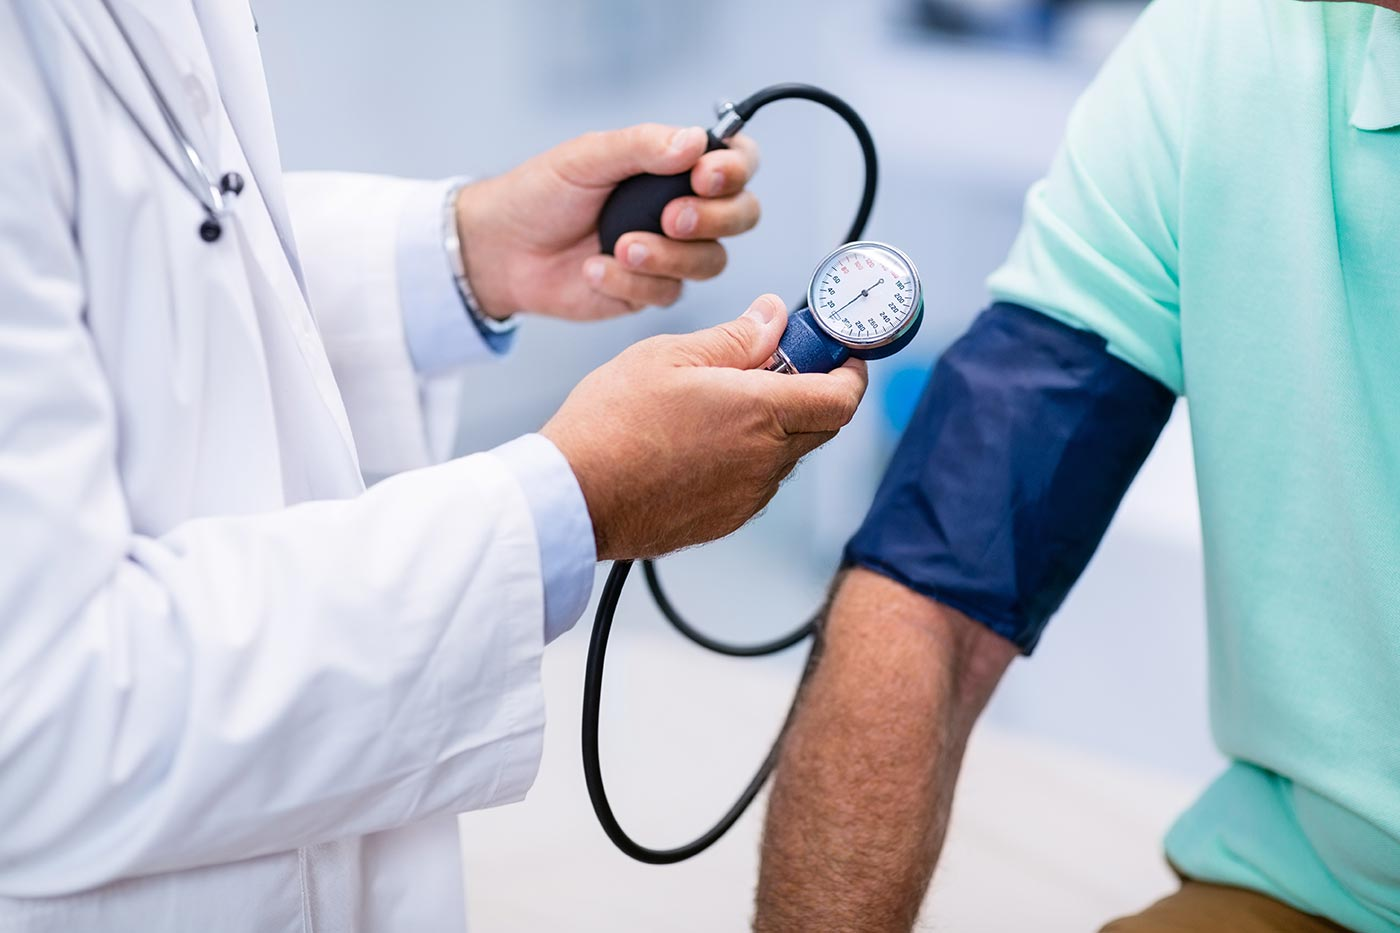 Physician takes a person's blood pressure.